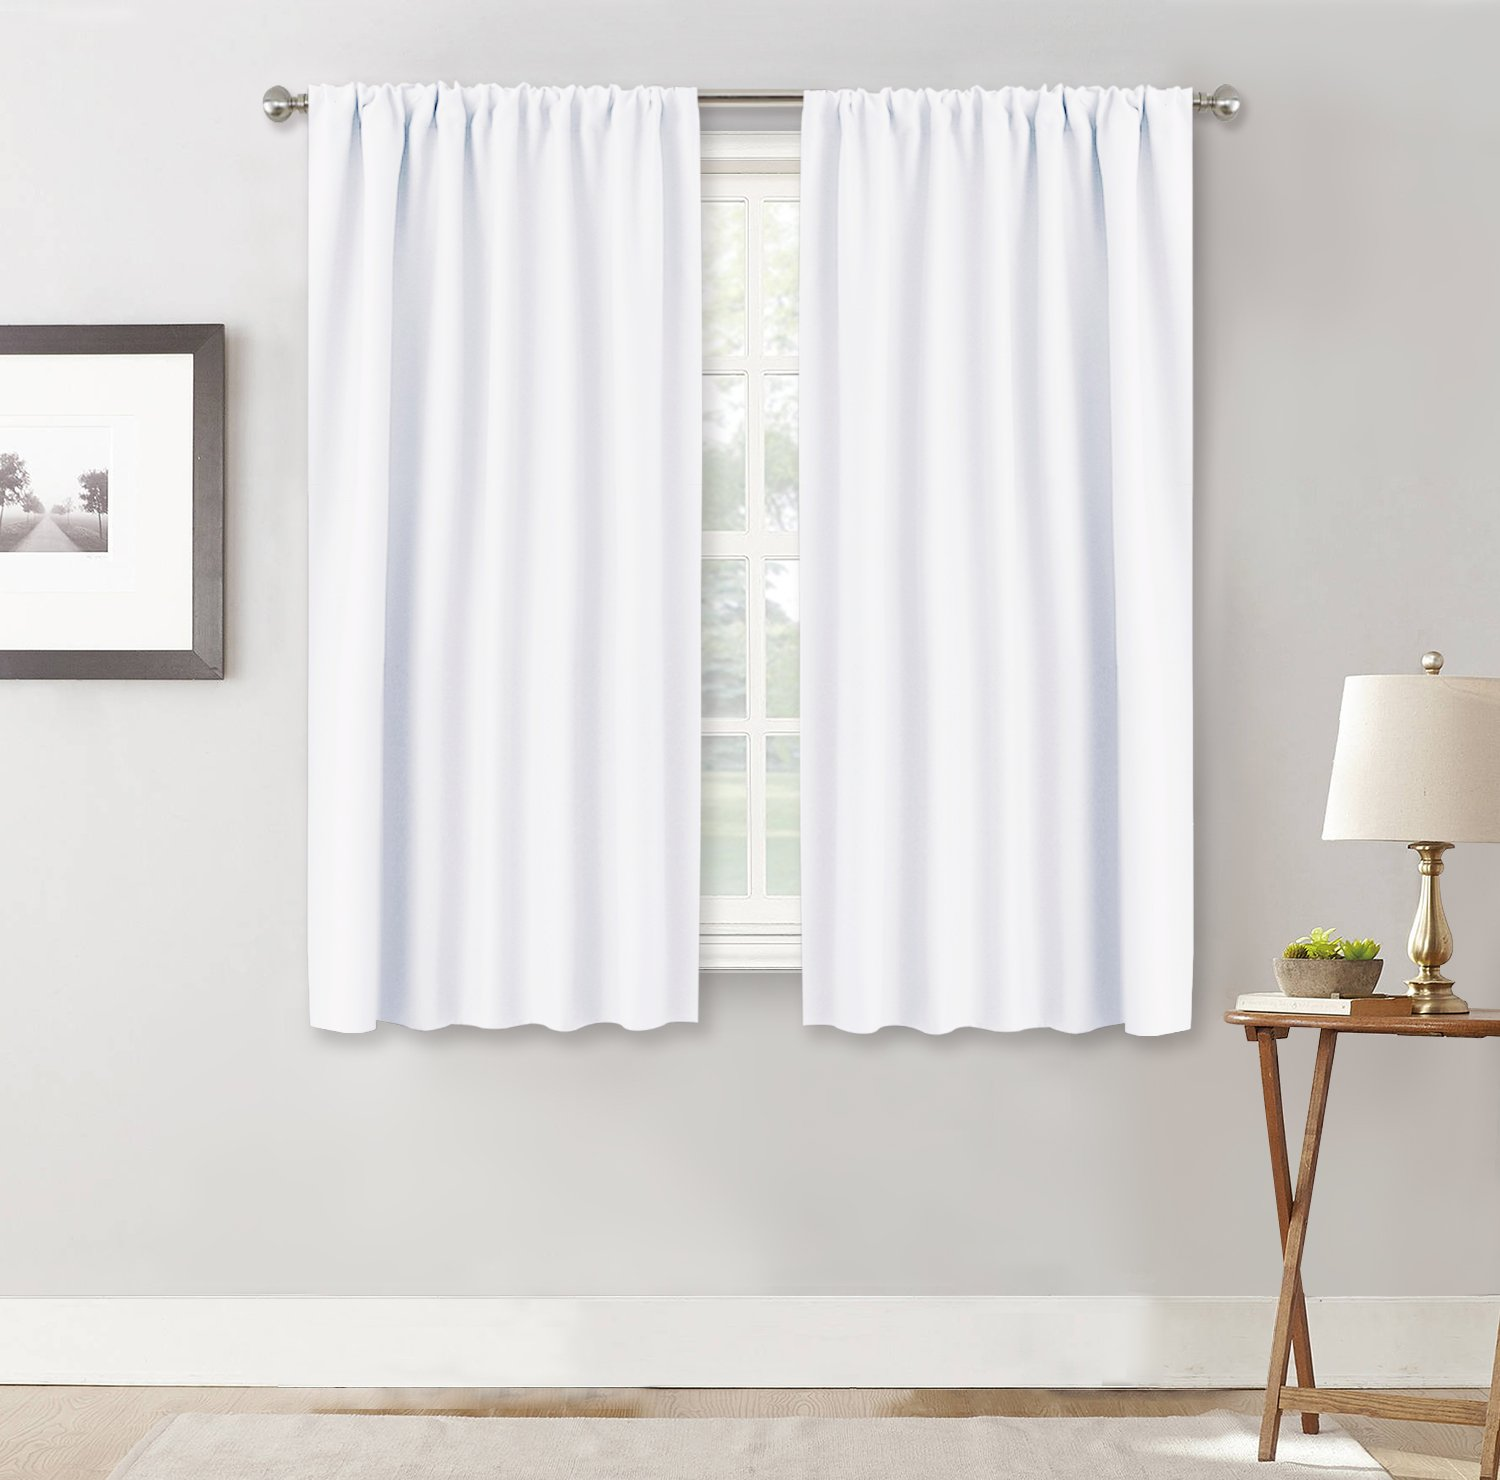 RYB HOME Bedroom Room Darkening Curtains Shades - Home Decoration Rod Pockets Window Covering Curtain Drapes Noise Reducing for Living Room/Kitchen, W 42'' x L 45'', Pure White, 2 Pieces